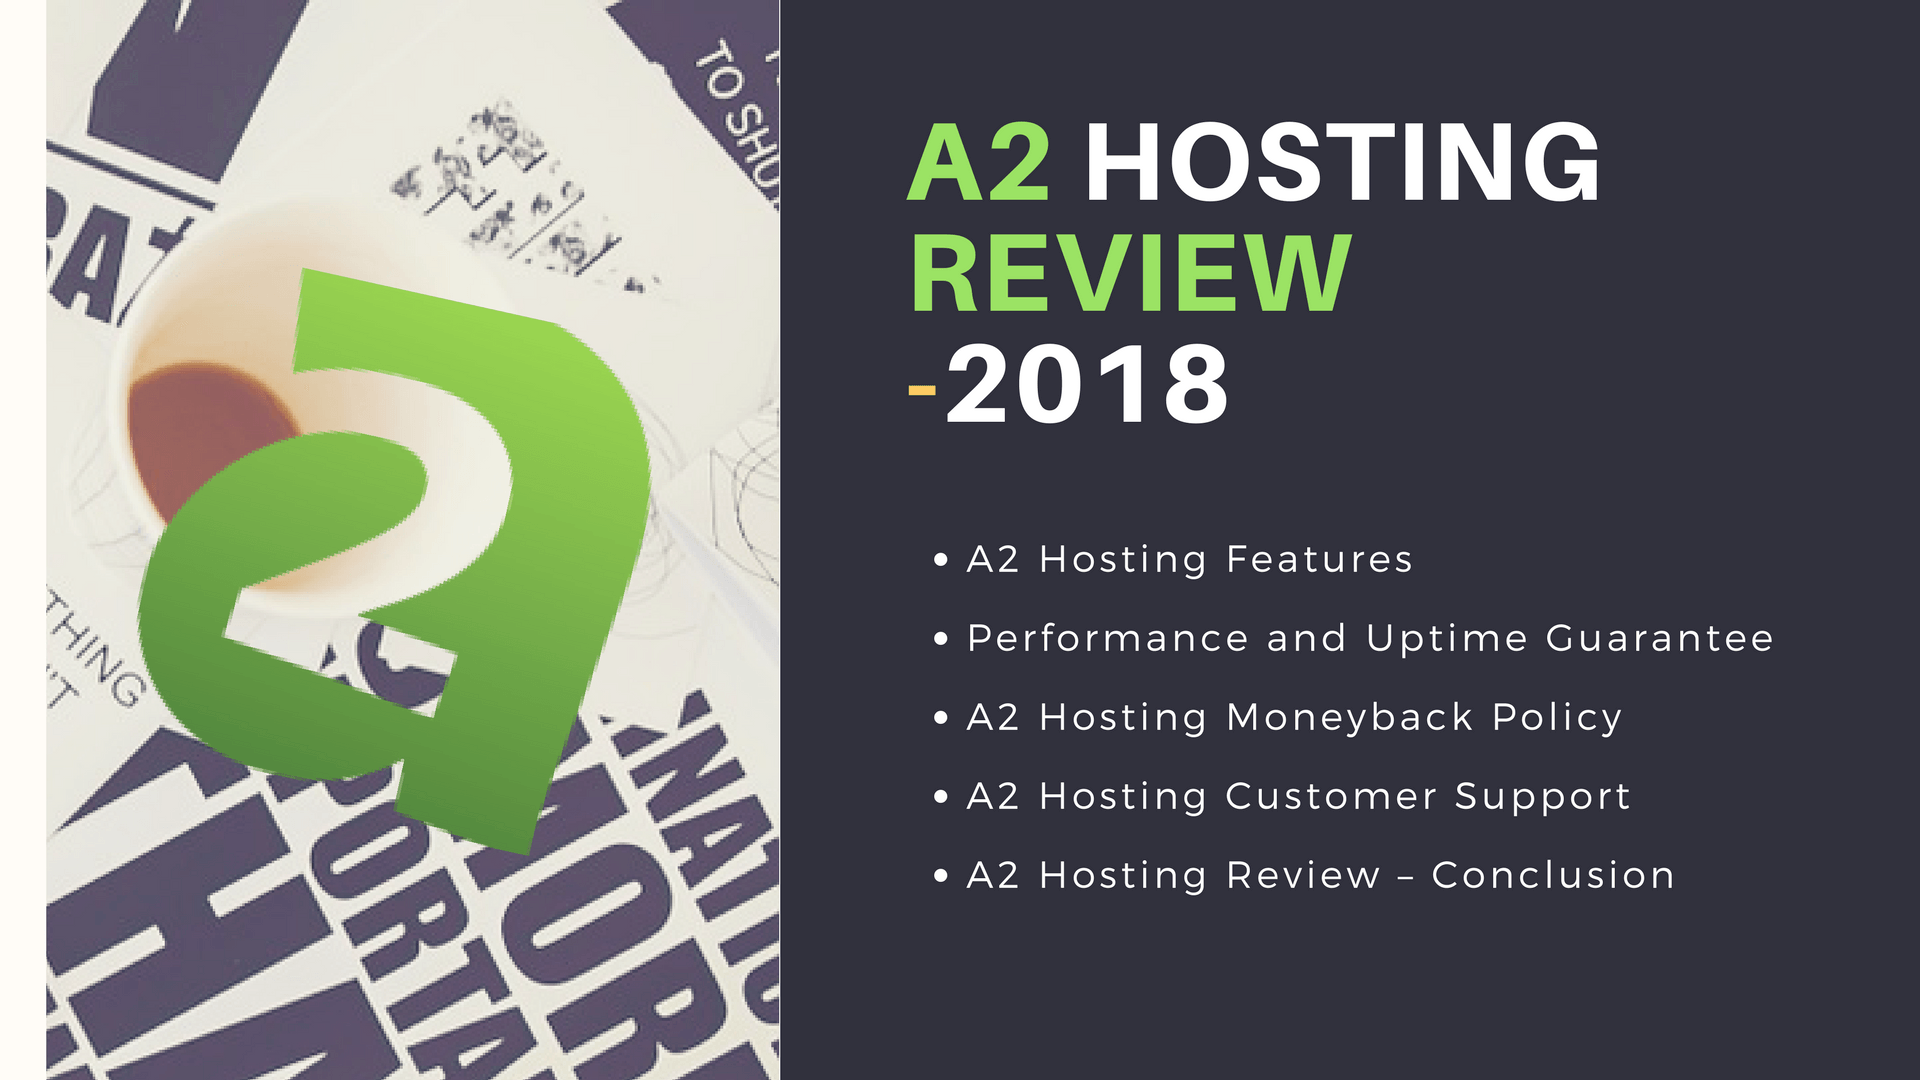 A2 Web Hosting Review 2018 | It can be a Best Hosting Provider for You